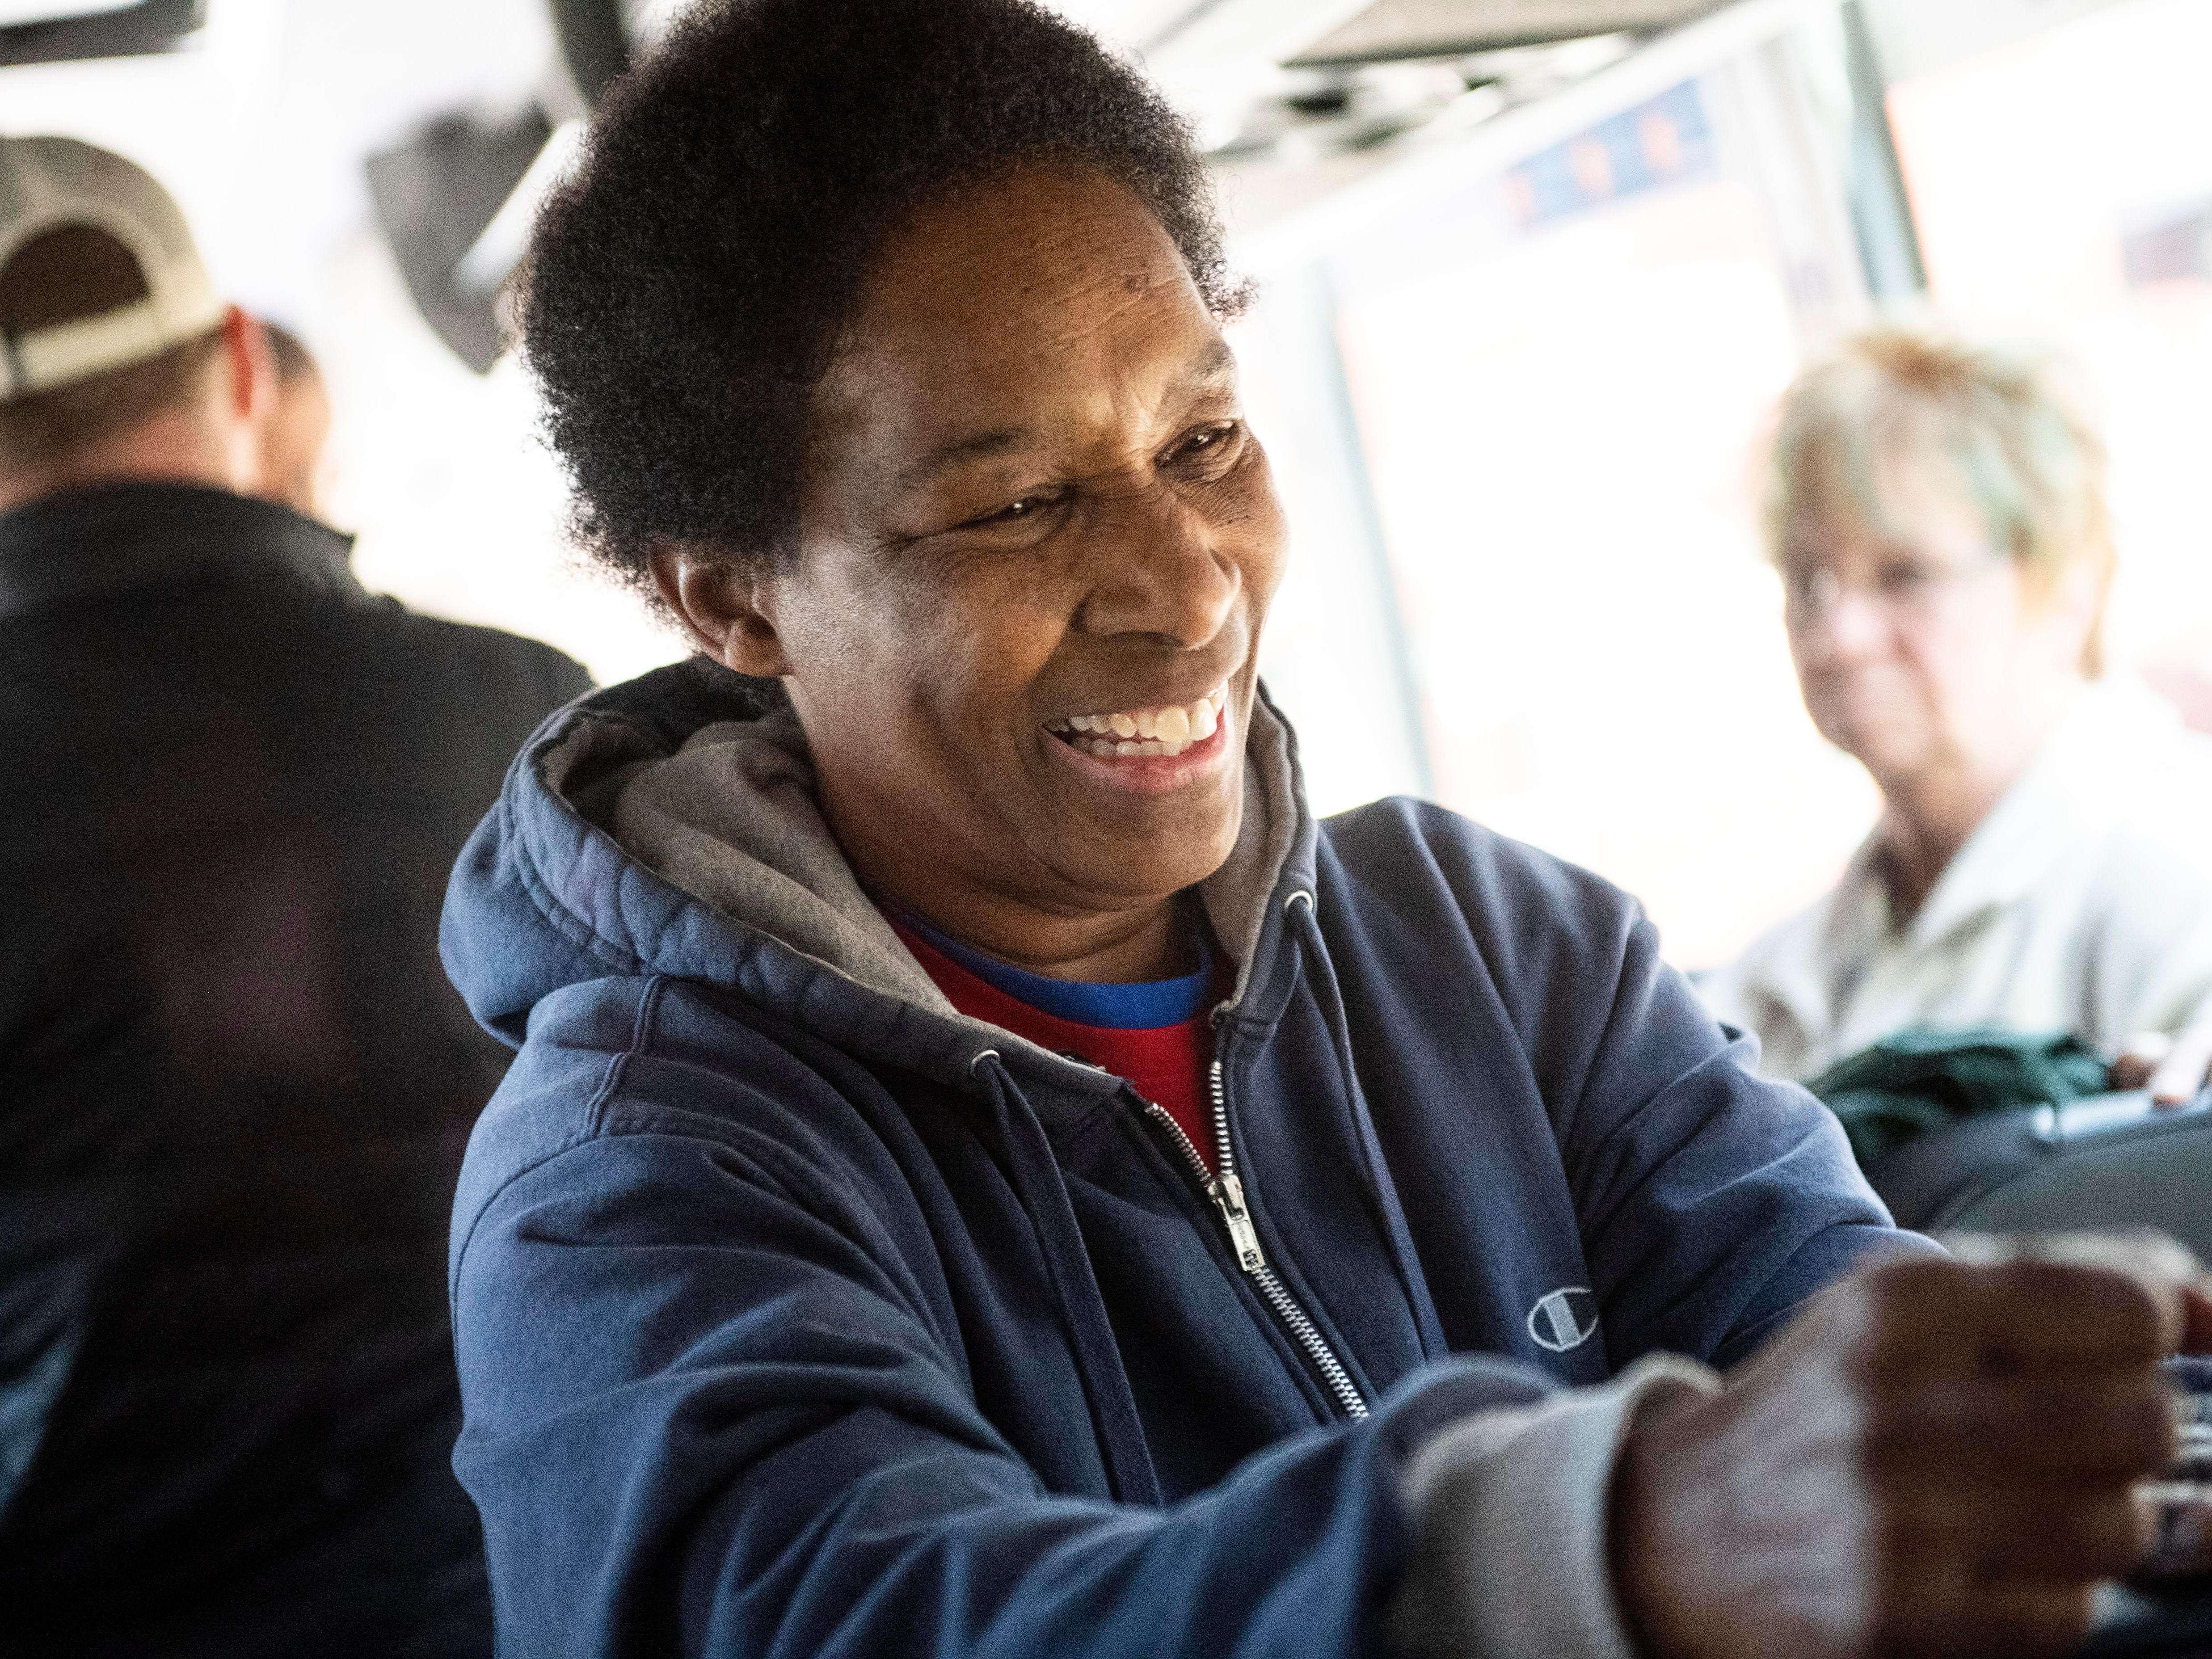 Loretta Claiborne, a York-native and Special Olympic gold medalist, laughs while the production crew for ESPN set up their cameras on a Greyhound bus, Thursday, Nov. 29, 2018. ESPN and Special Olympics have partnered to do a documentary on 50 athletes to celebrate 50 years of Special Olympics. The documentary on Claiborne will air in Dec. 2018.